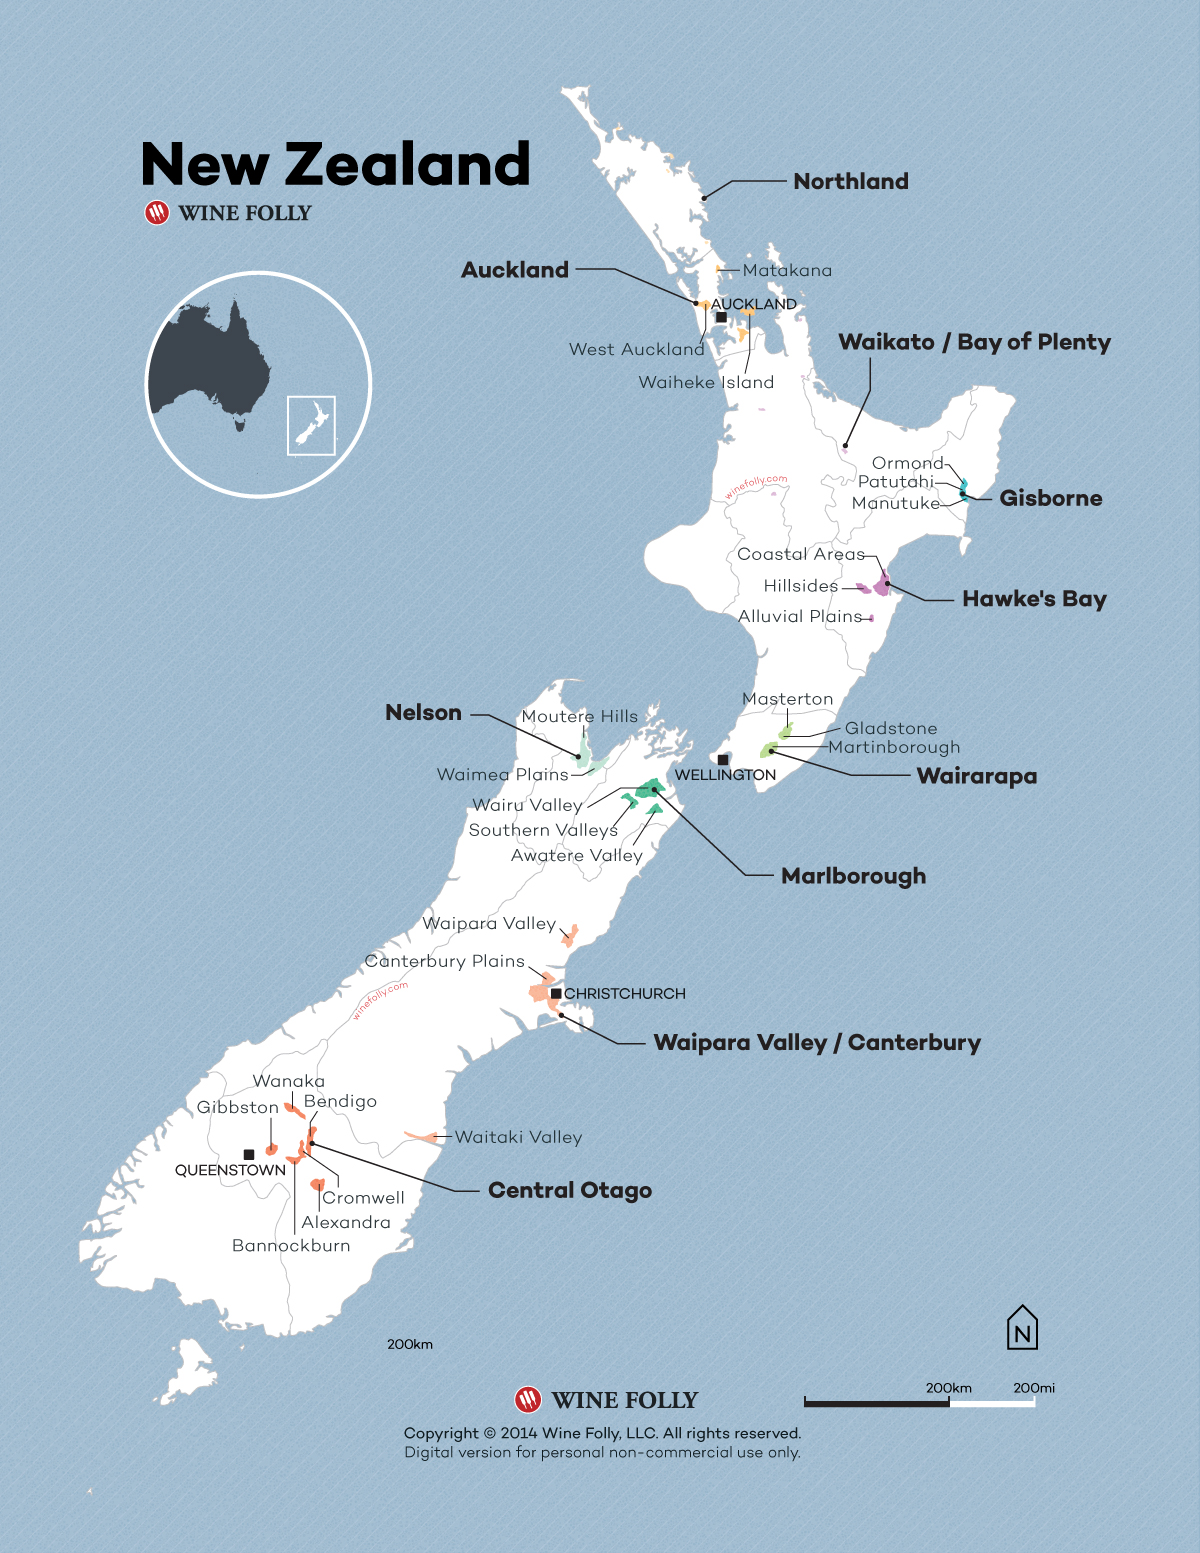 New Zealand Wine Map 2015 by Wine Folly